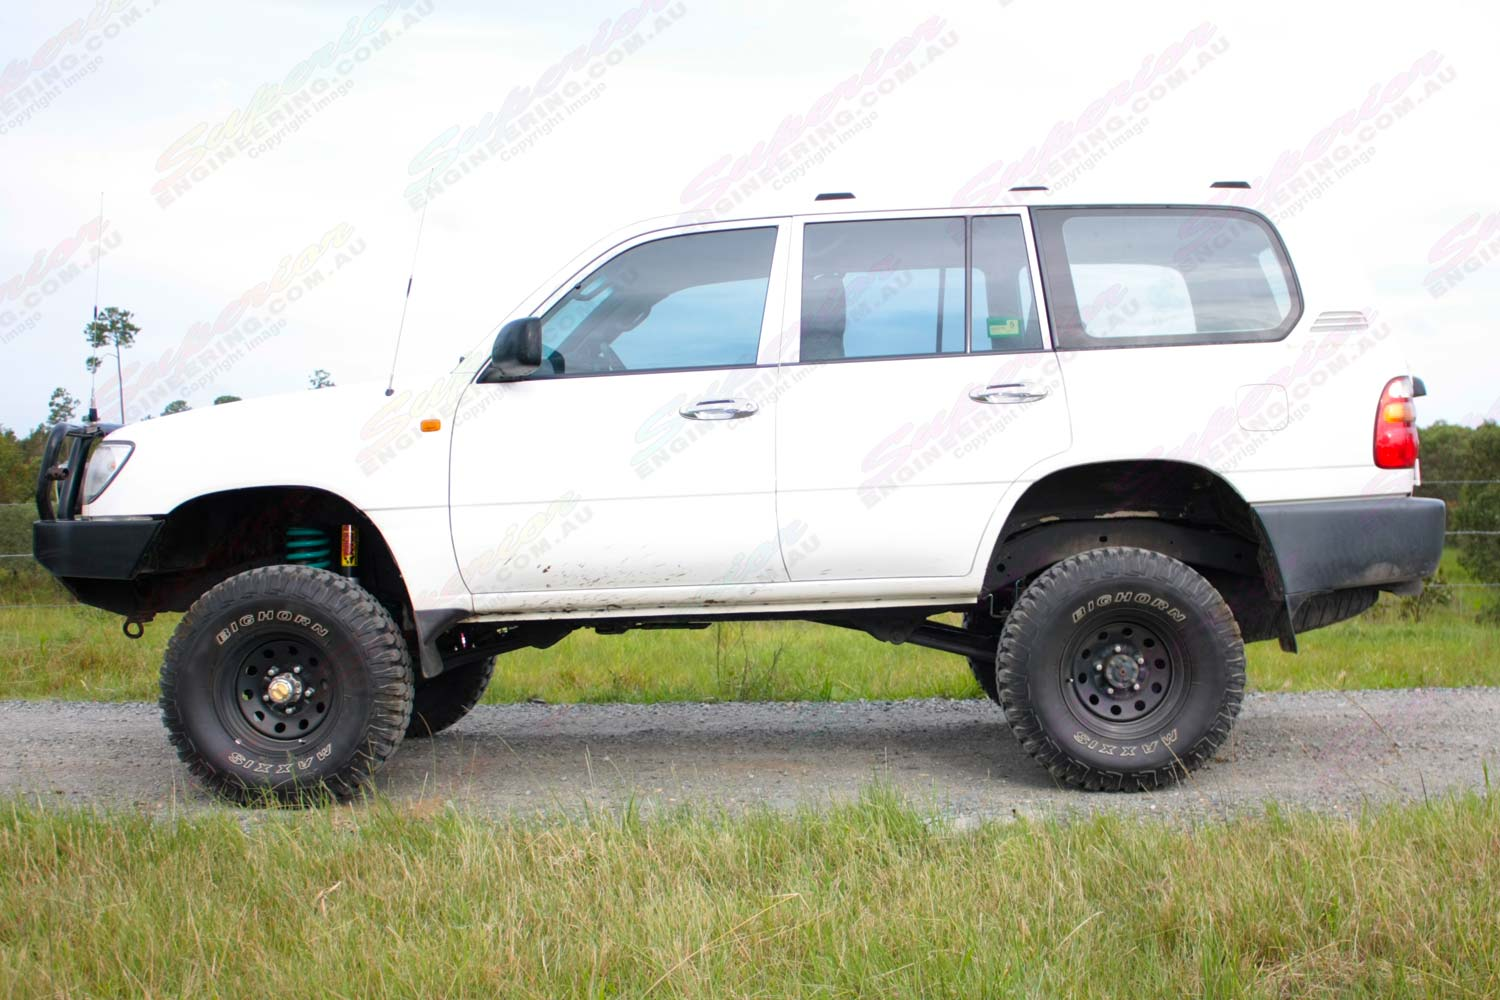 Left side view of a white 105 Series Toyota Landcruiser Wagon after being fitted with a 3 inch superflex lift kit featuring Tough Dog shocks